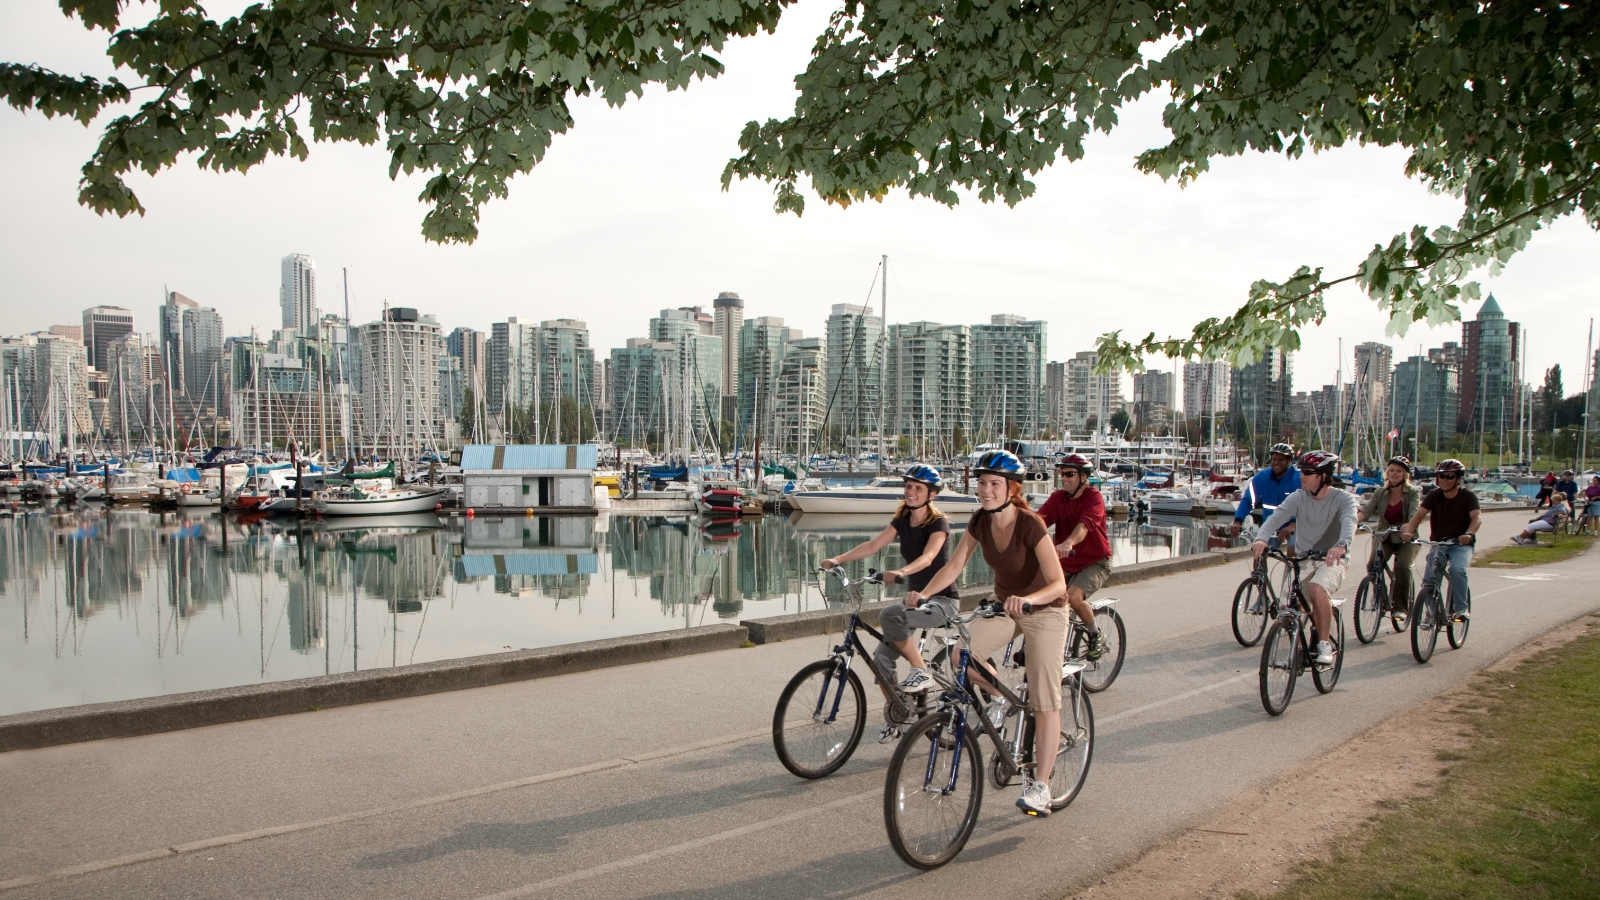 Things to Do in Vancouver - Biking